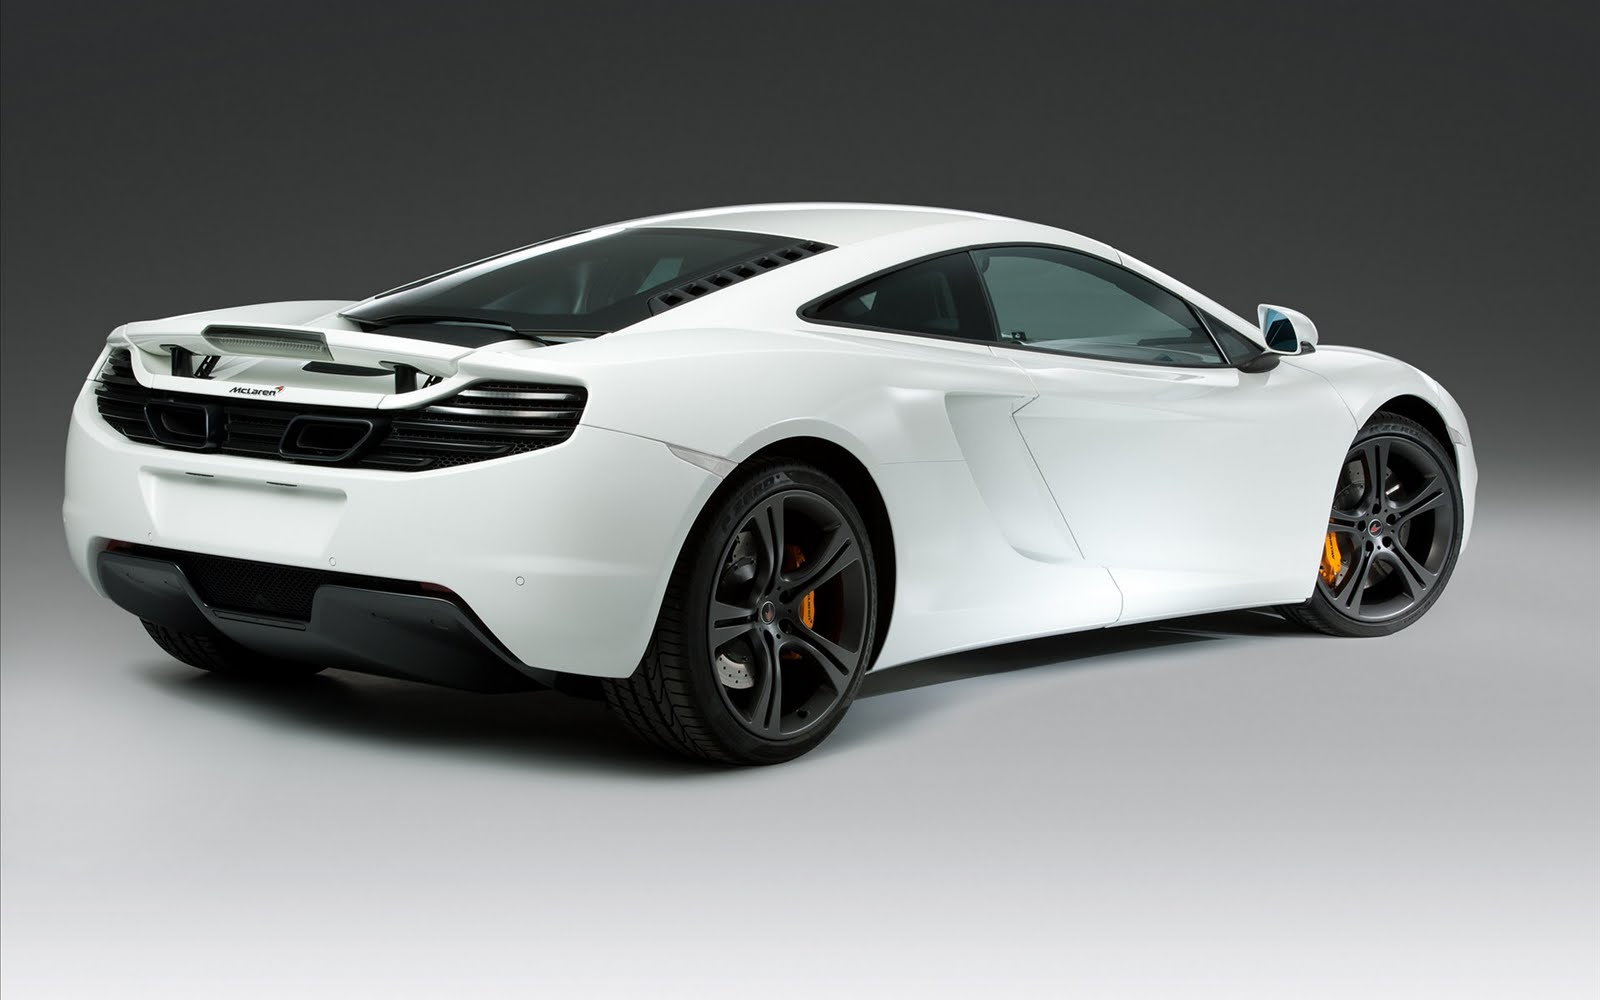 mclaren mp4 12c 2012 spec and review car wallpaper car. Black Bedroom Furniture Sets. Home Design Ideas